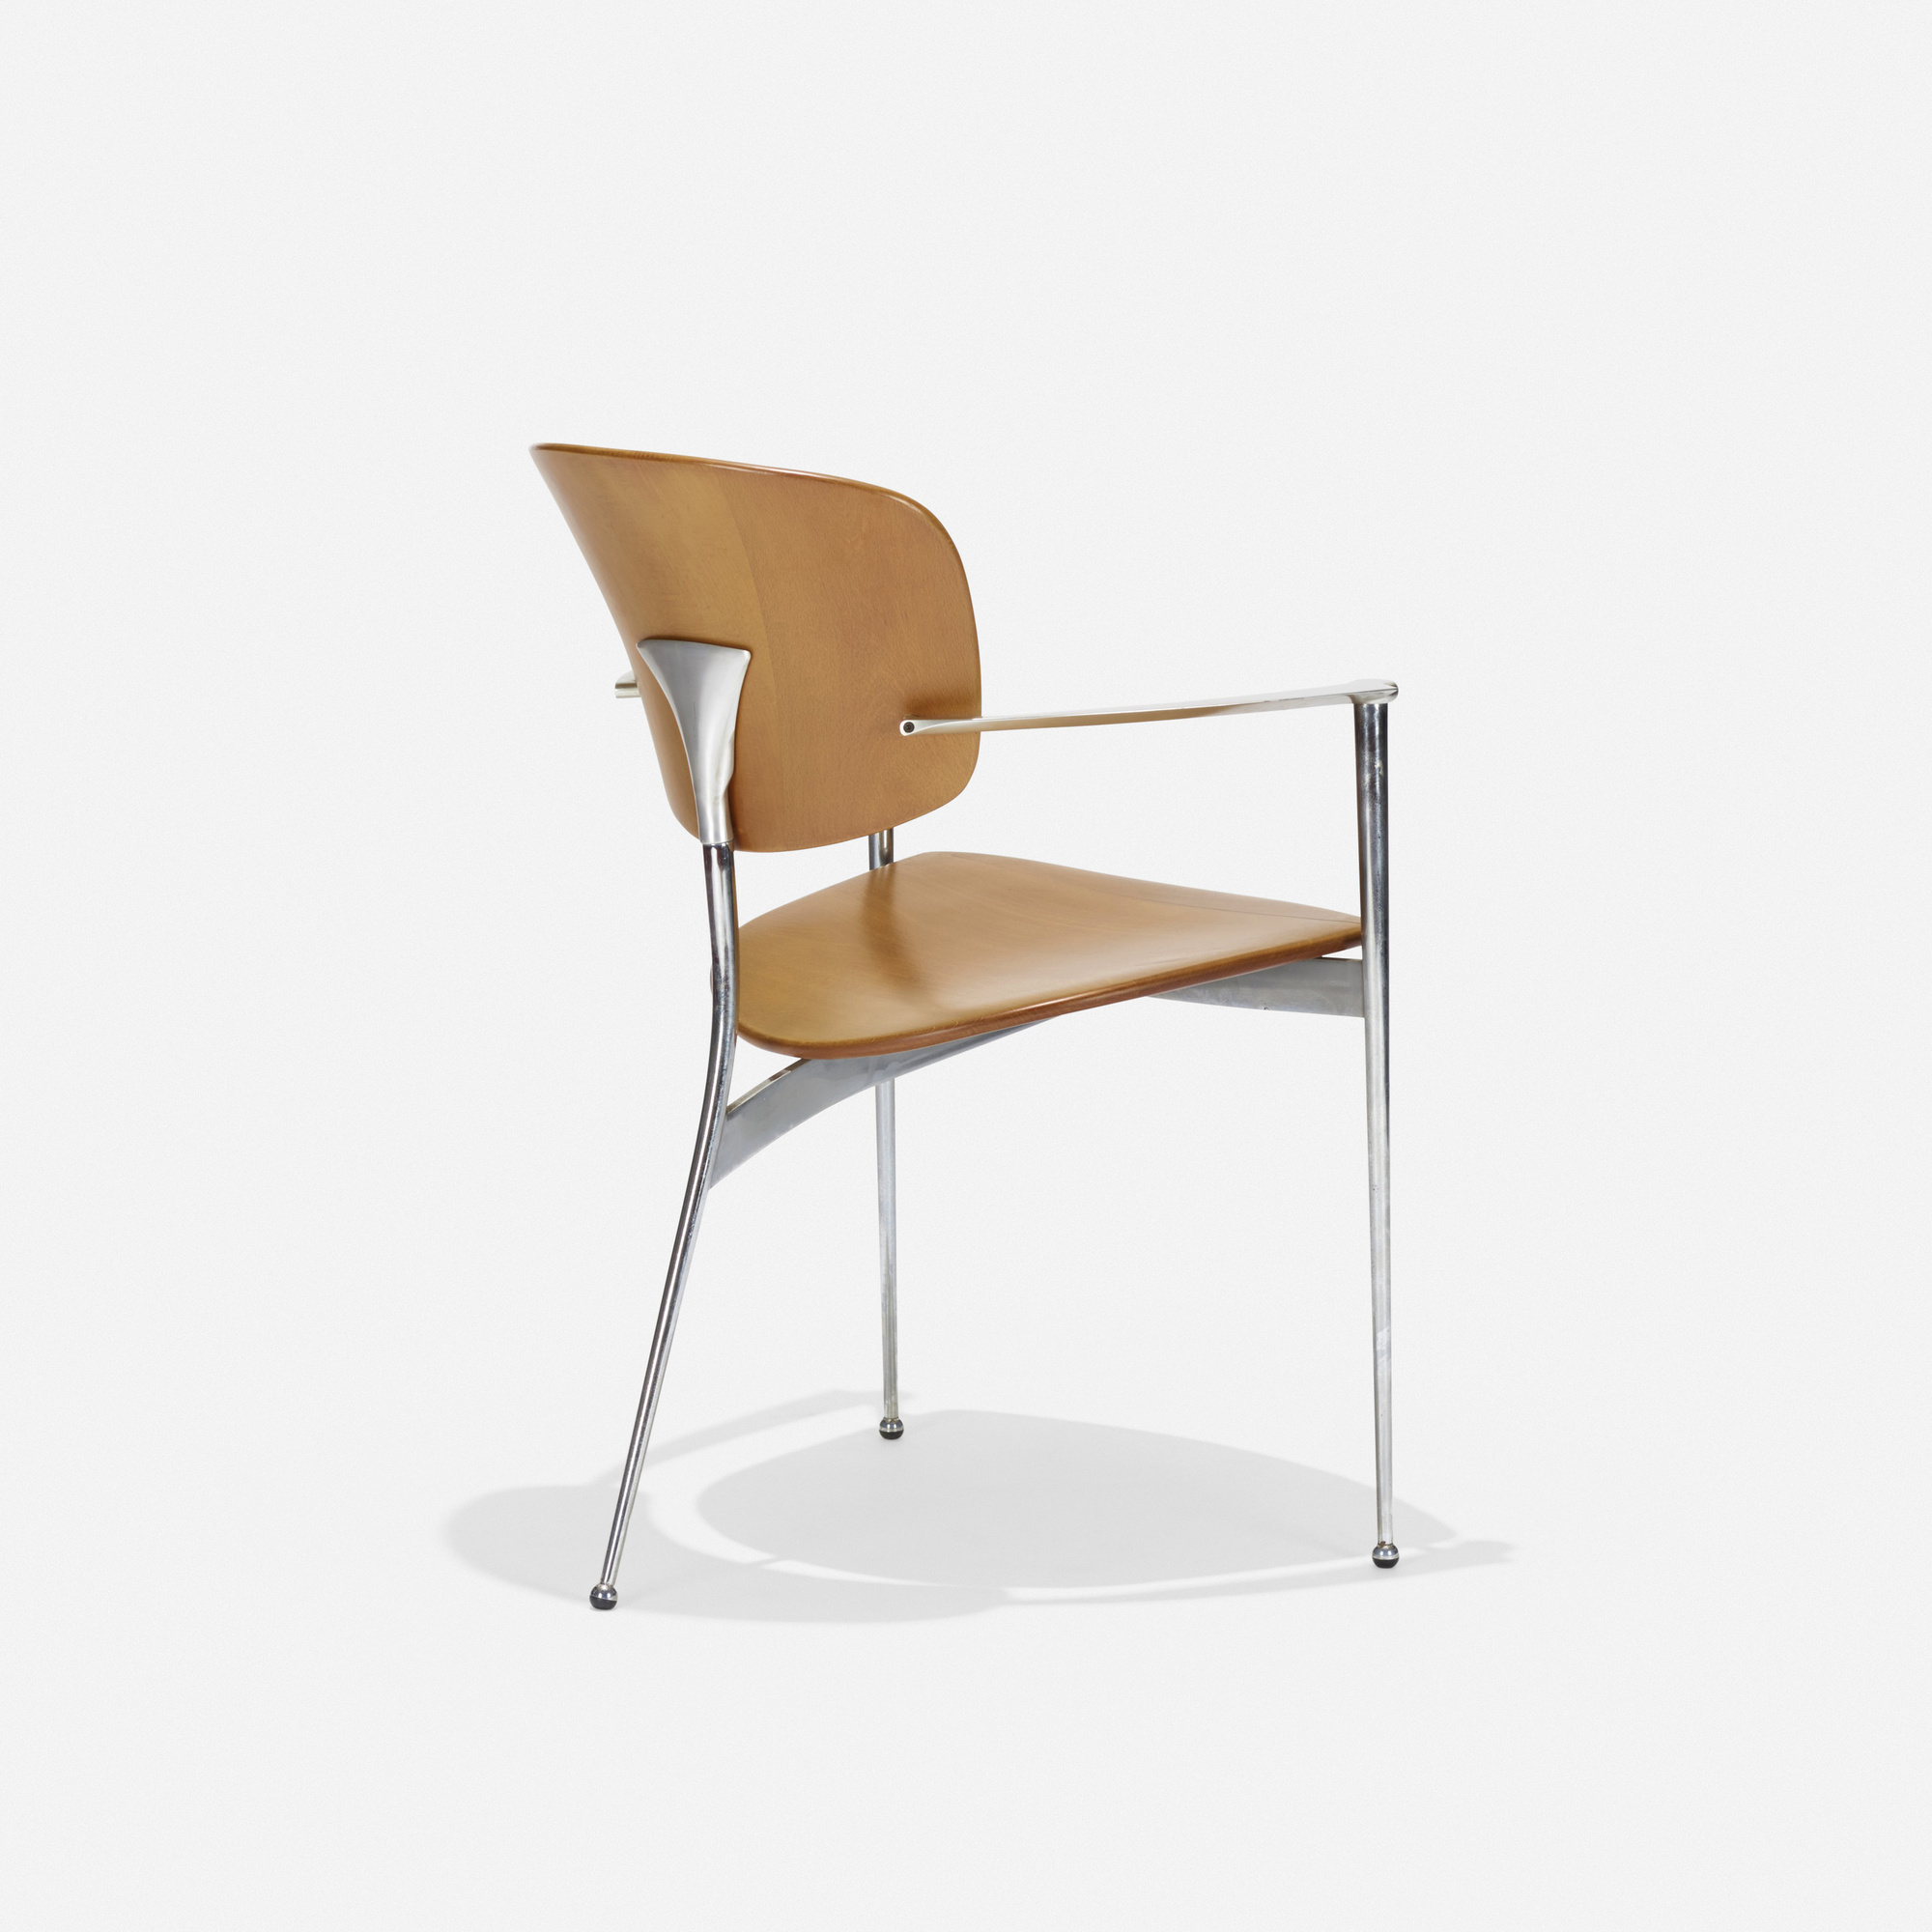 120: Josep Llusca / Andrea chair (3 of 3)